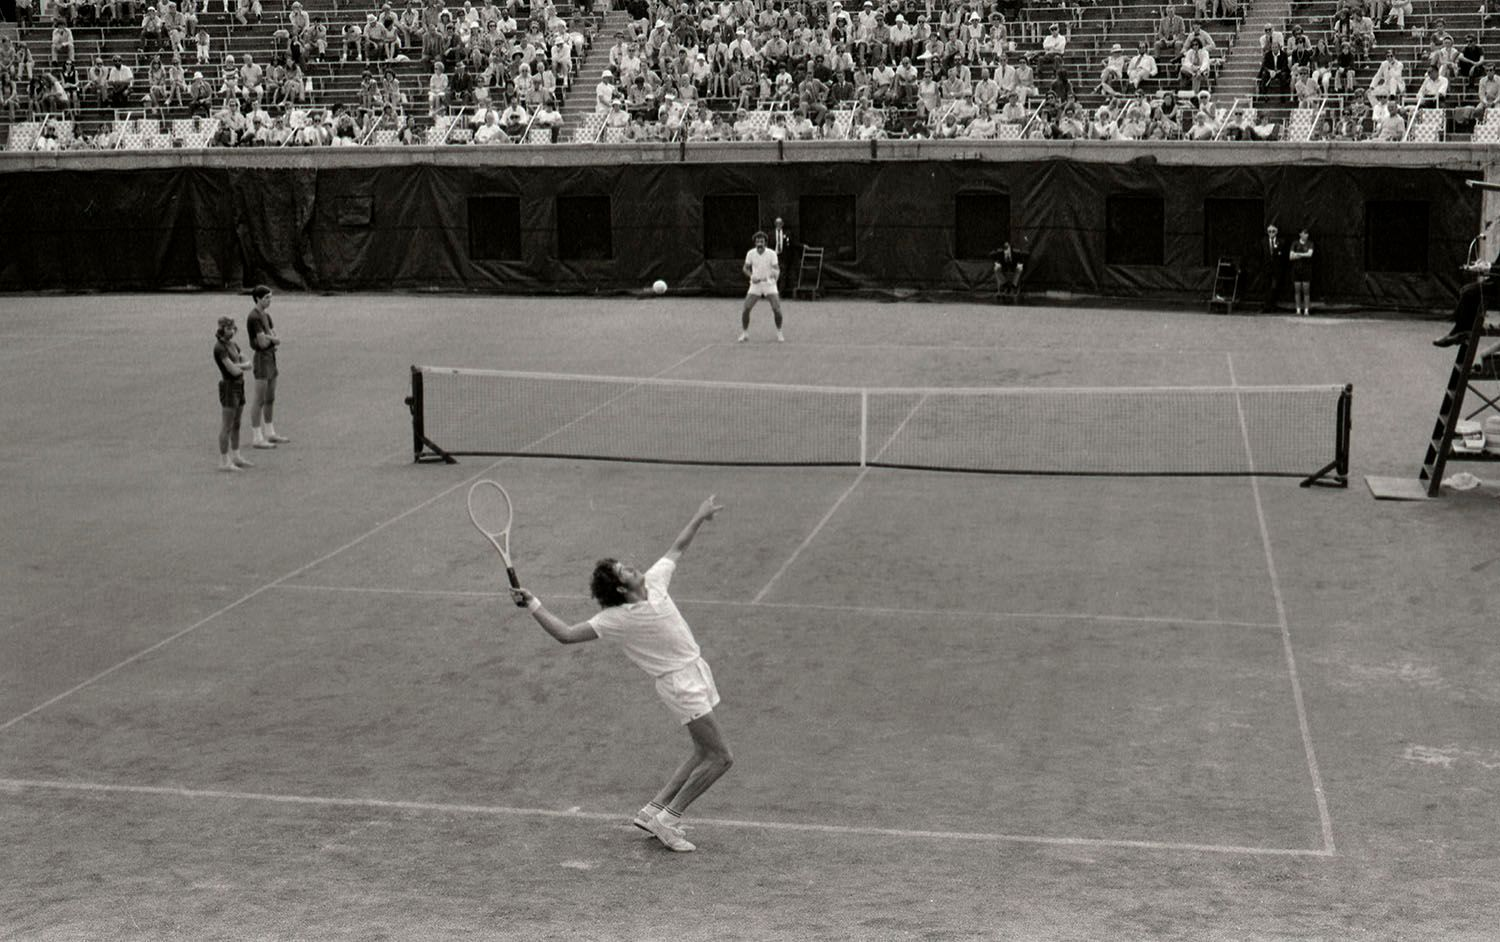 Mens Tennis at Forest Hills, NY. 1971